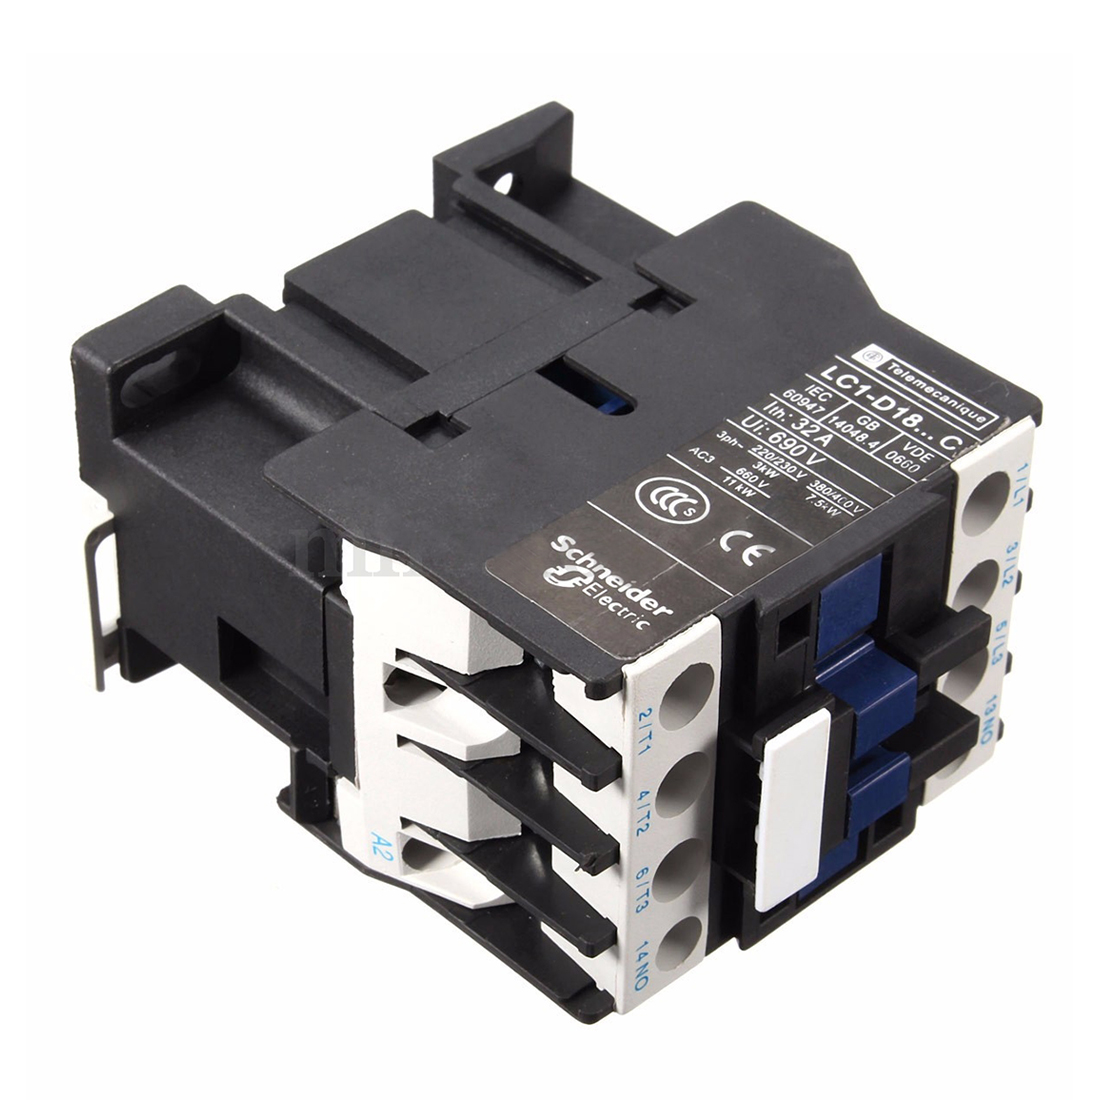 Power ac contactor 1no ac 220v 50 60hz coil motor starter for Three phase motor starter